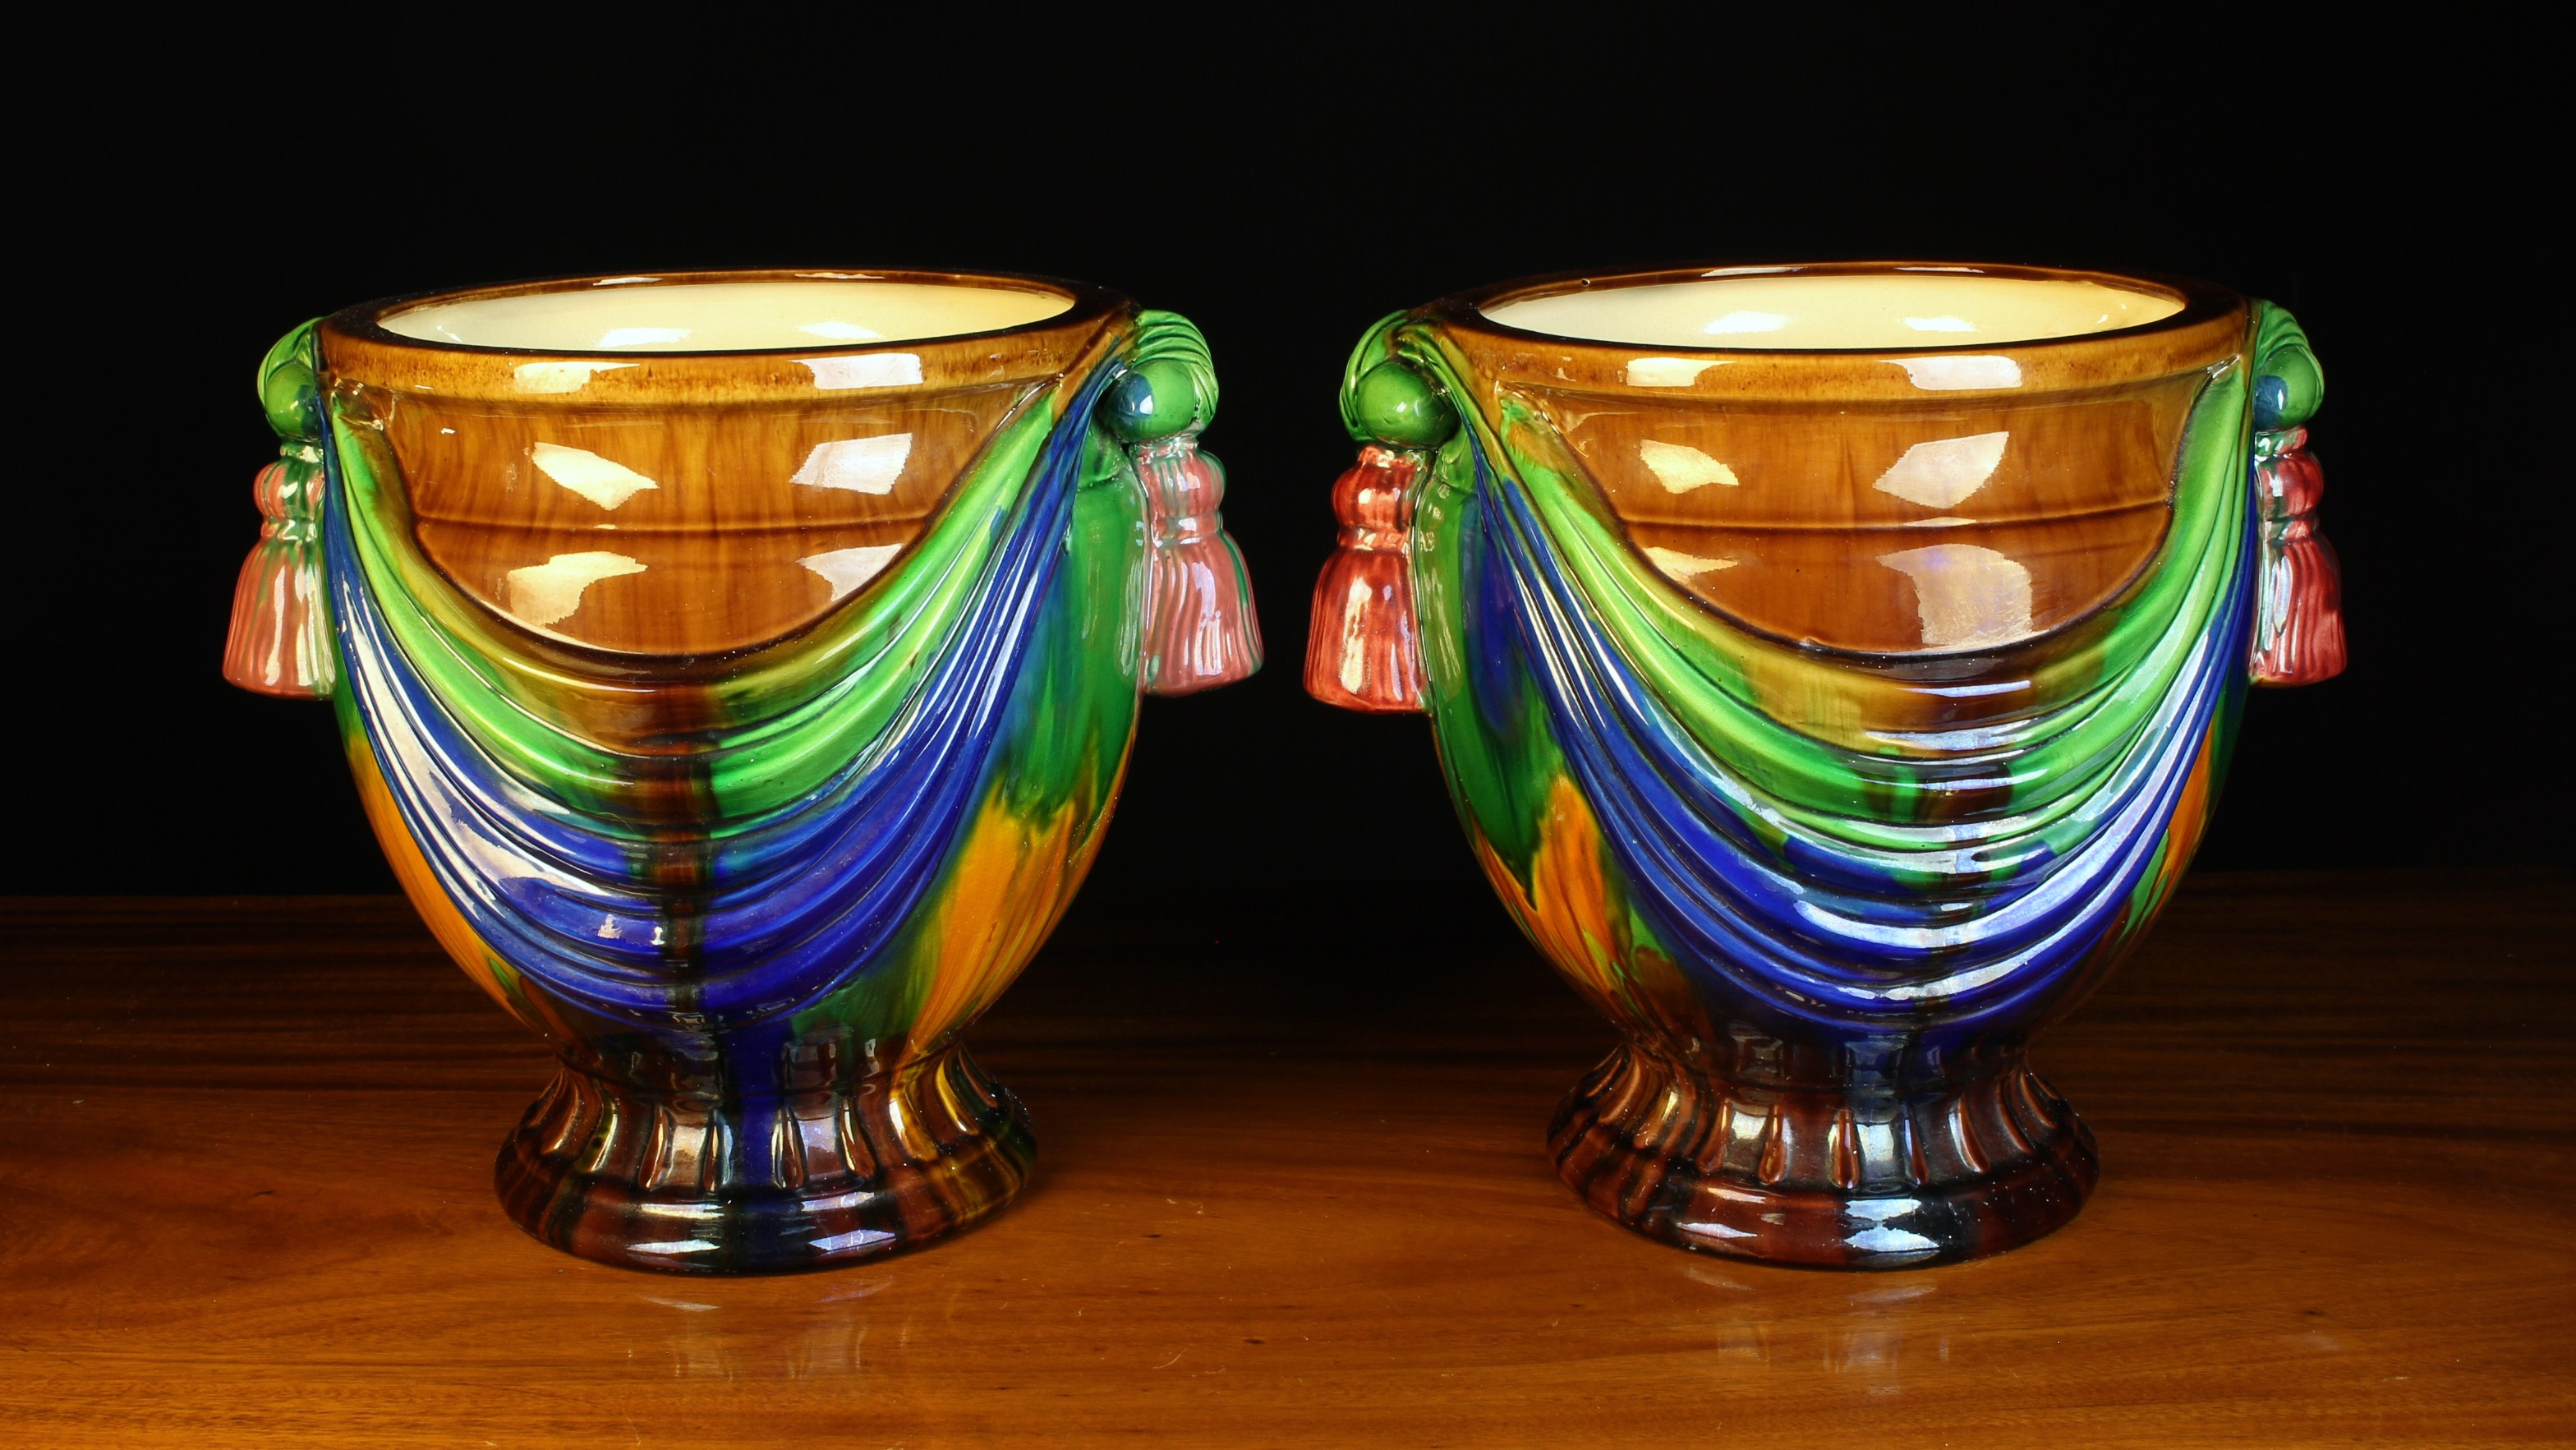 A Pair of Vintage Majolica Jardinieres moulded with swagged drapery between pendant tassels either